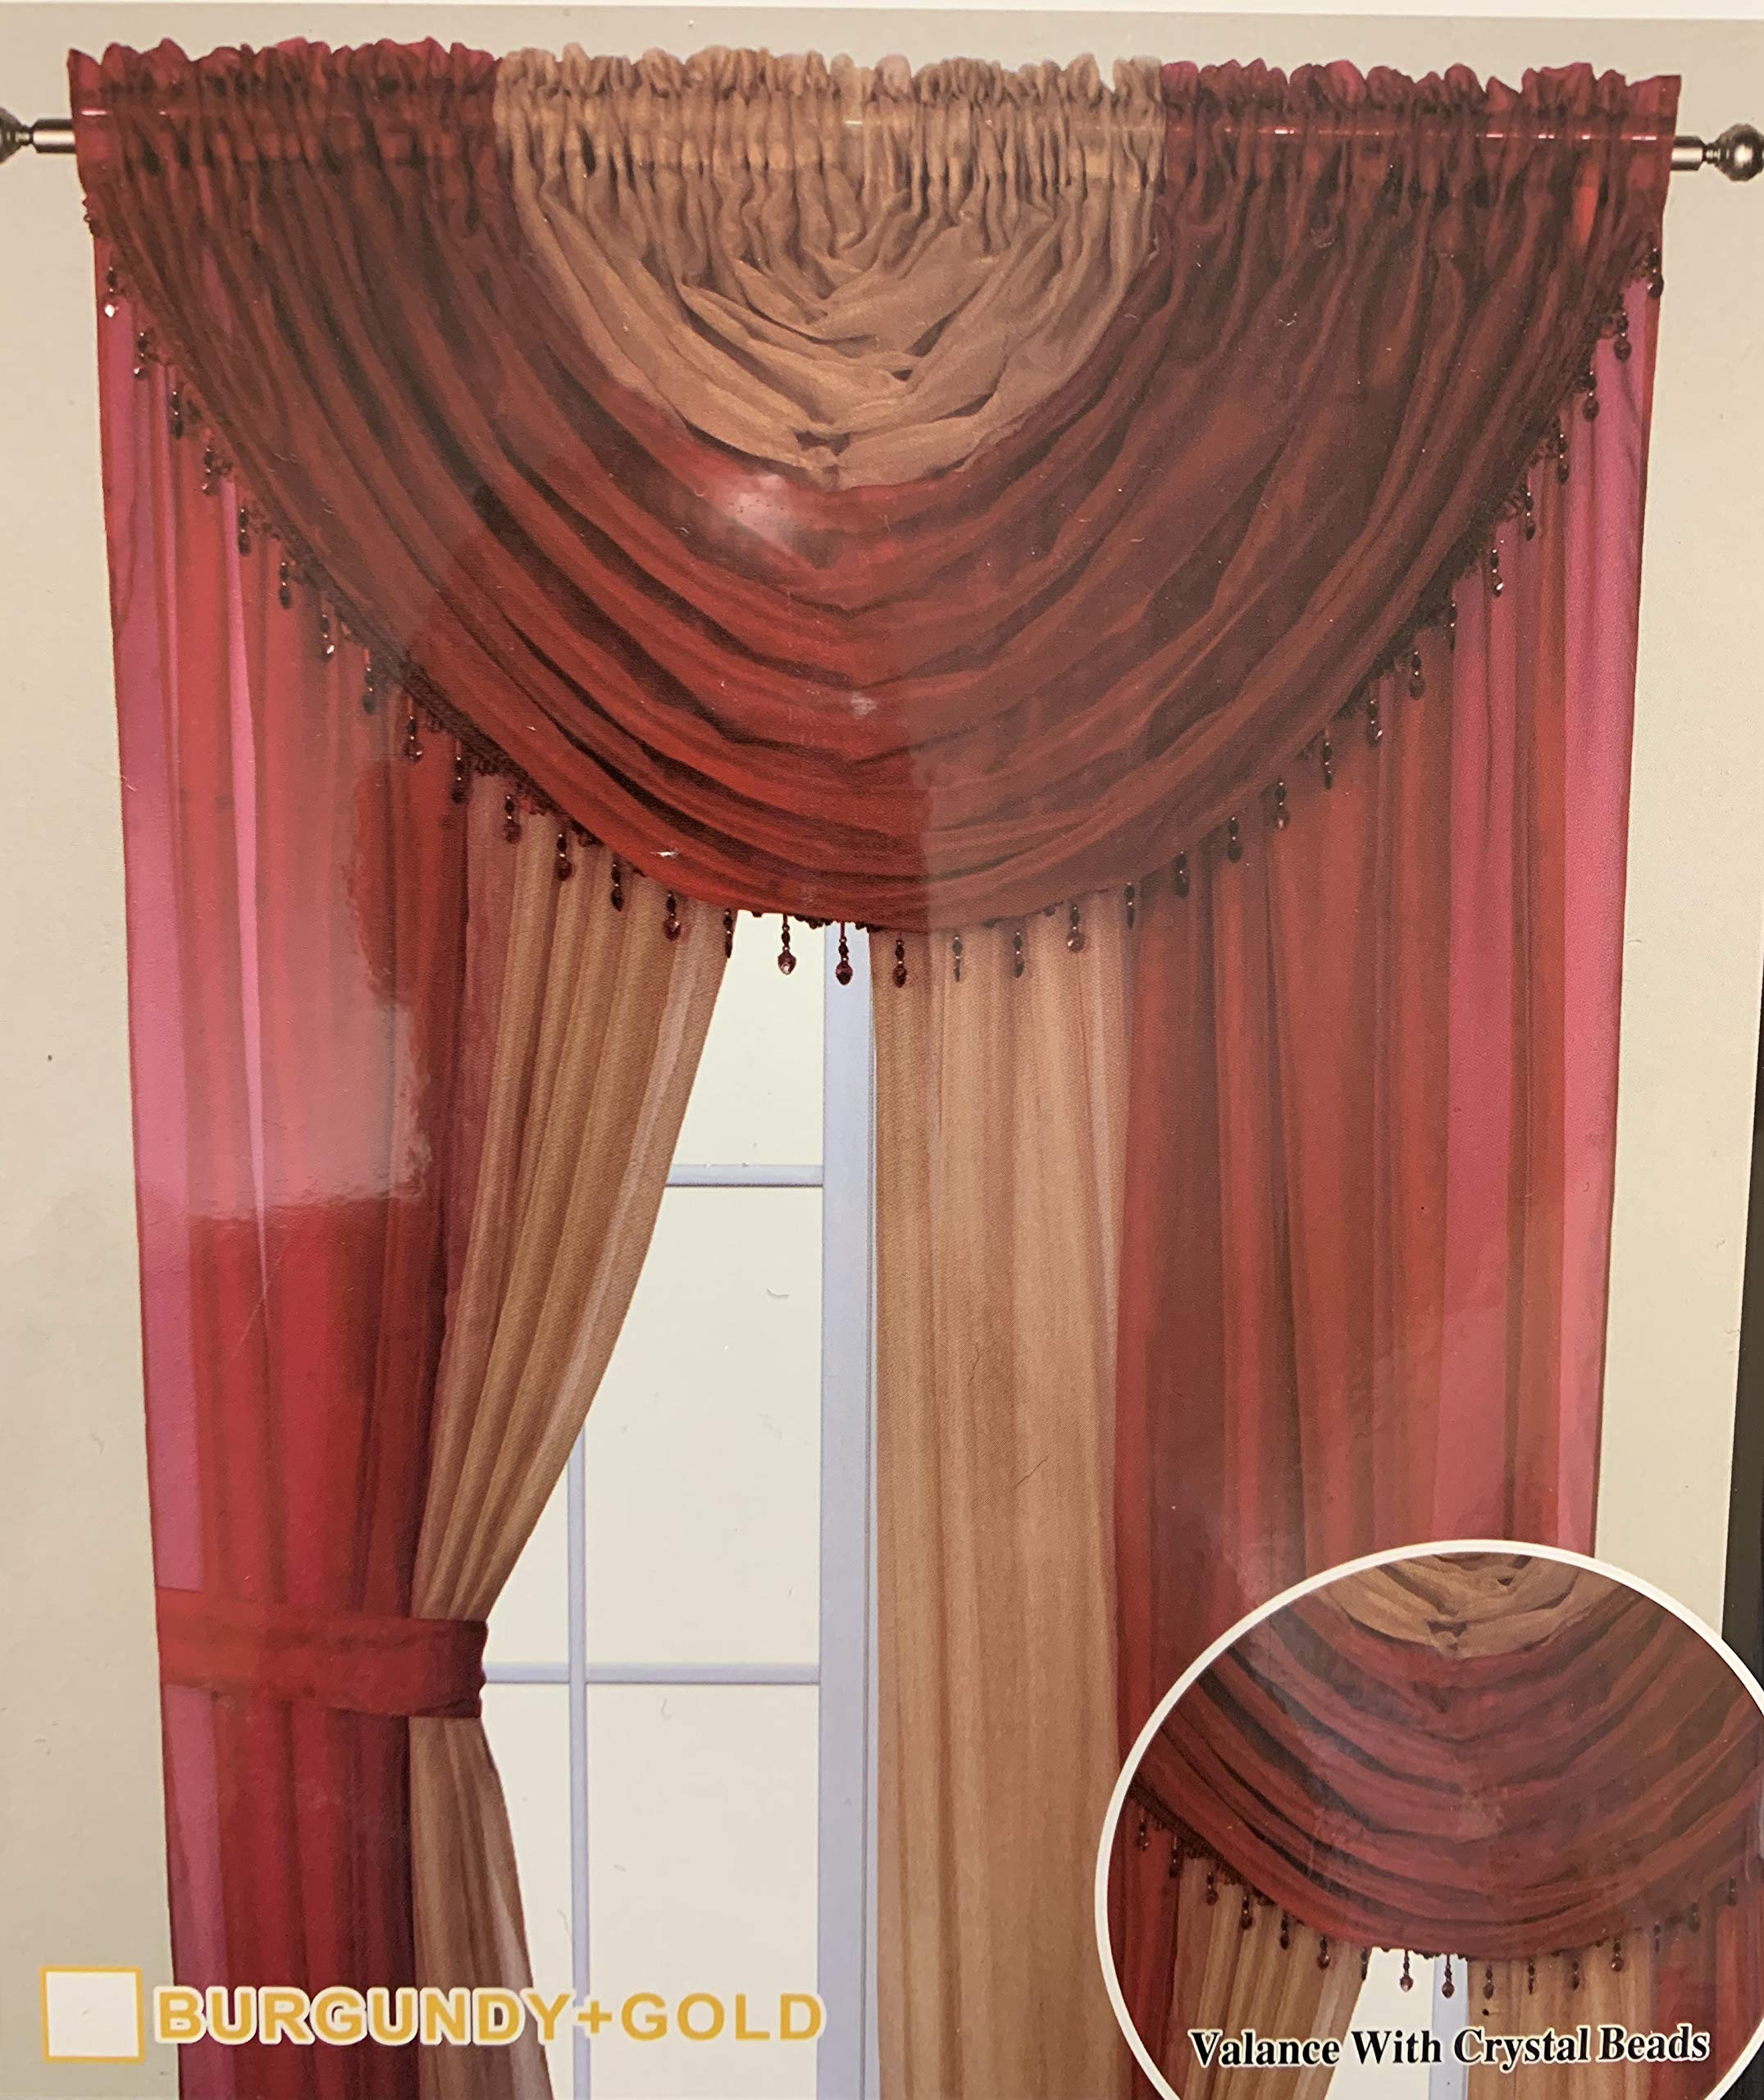 Elegant Home Complete Multicolor Window Sheer Curtain All-in-One Set with 4 Attached Panels and 2 Valances and Two Tiebacks for Living Room, Dining Room, Or Any Other Windows- L (Burgundy/Gold) by Elegant Home Decor